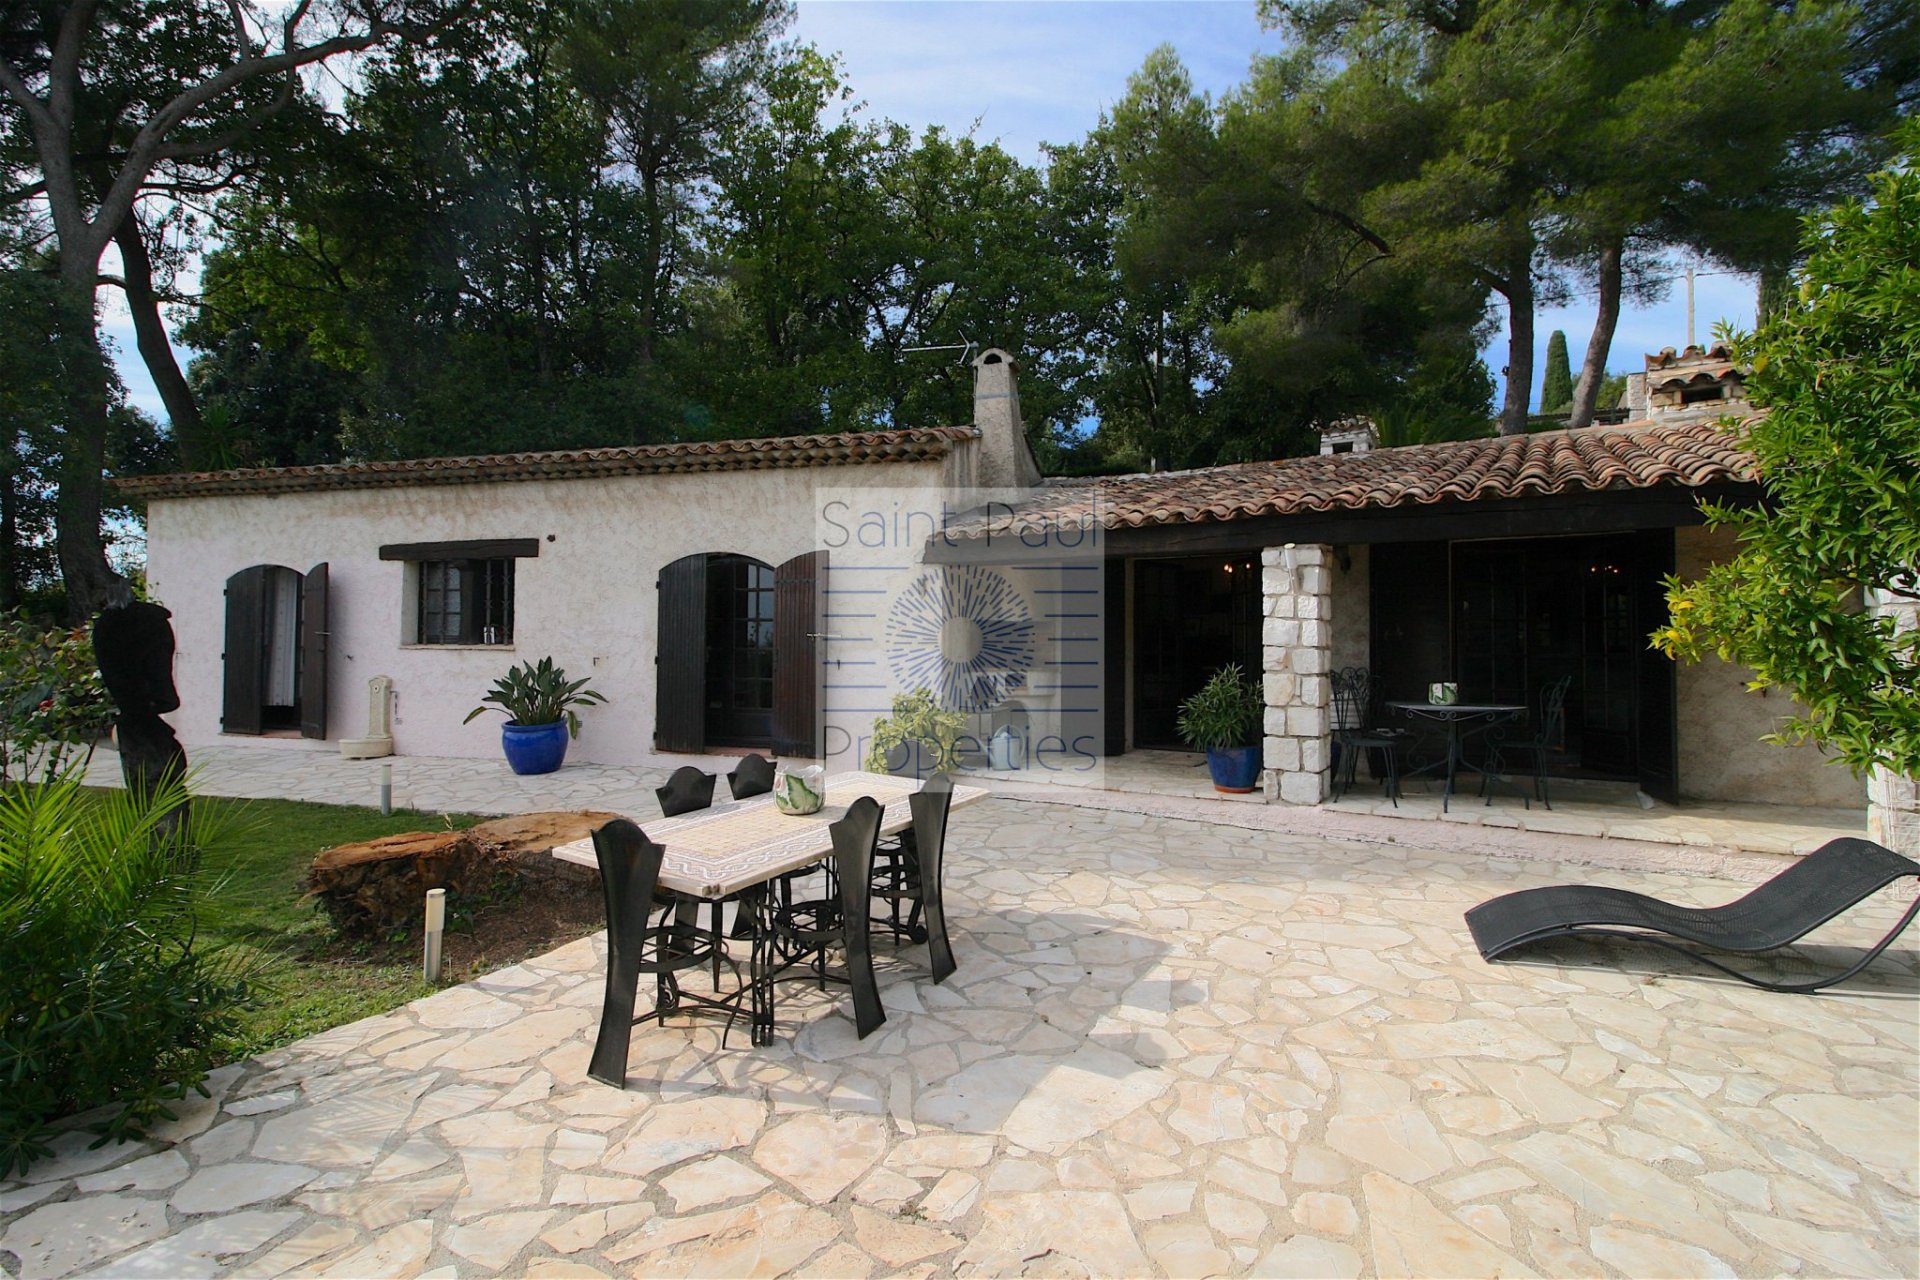 Lovely stone house in Tourrettes sur Loup